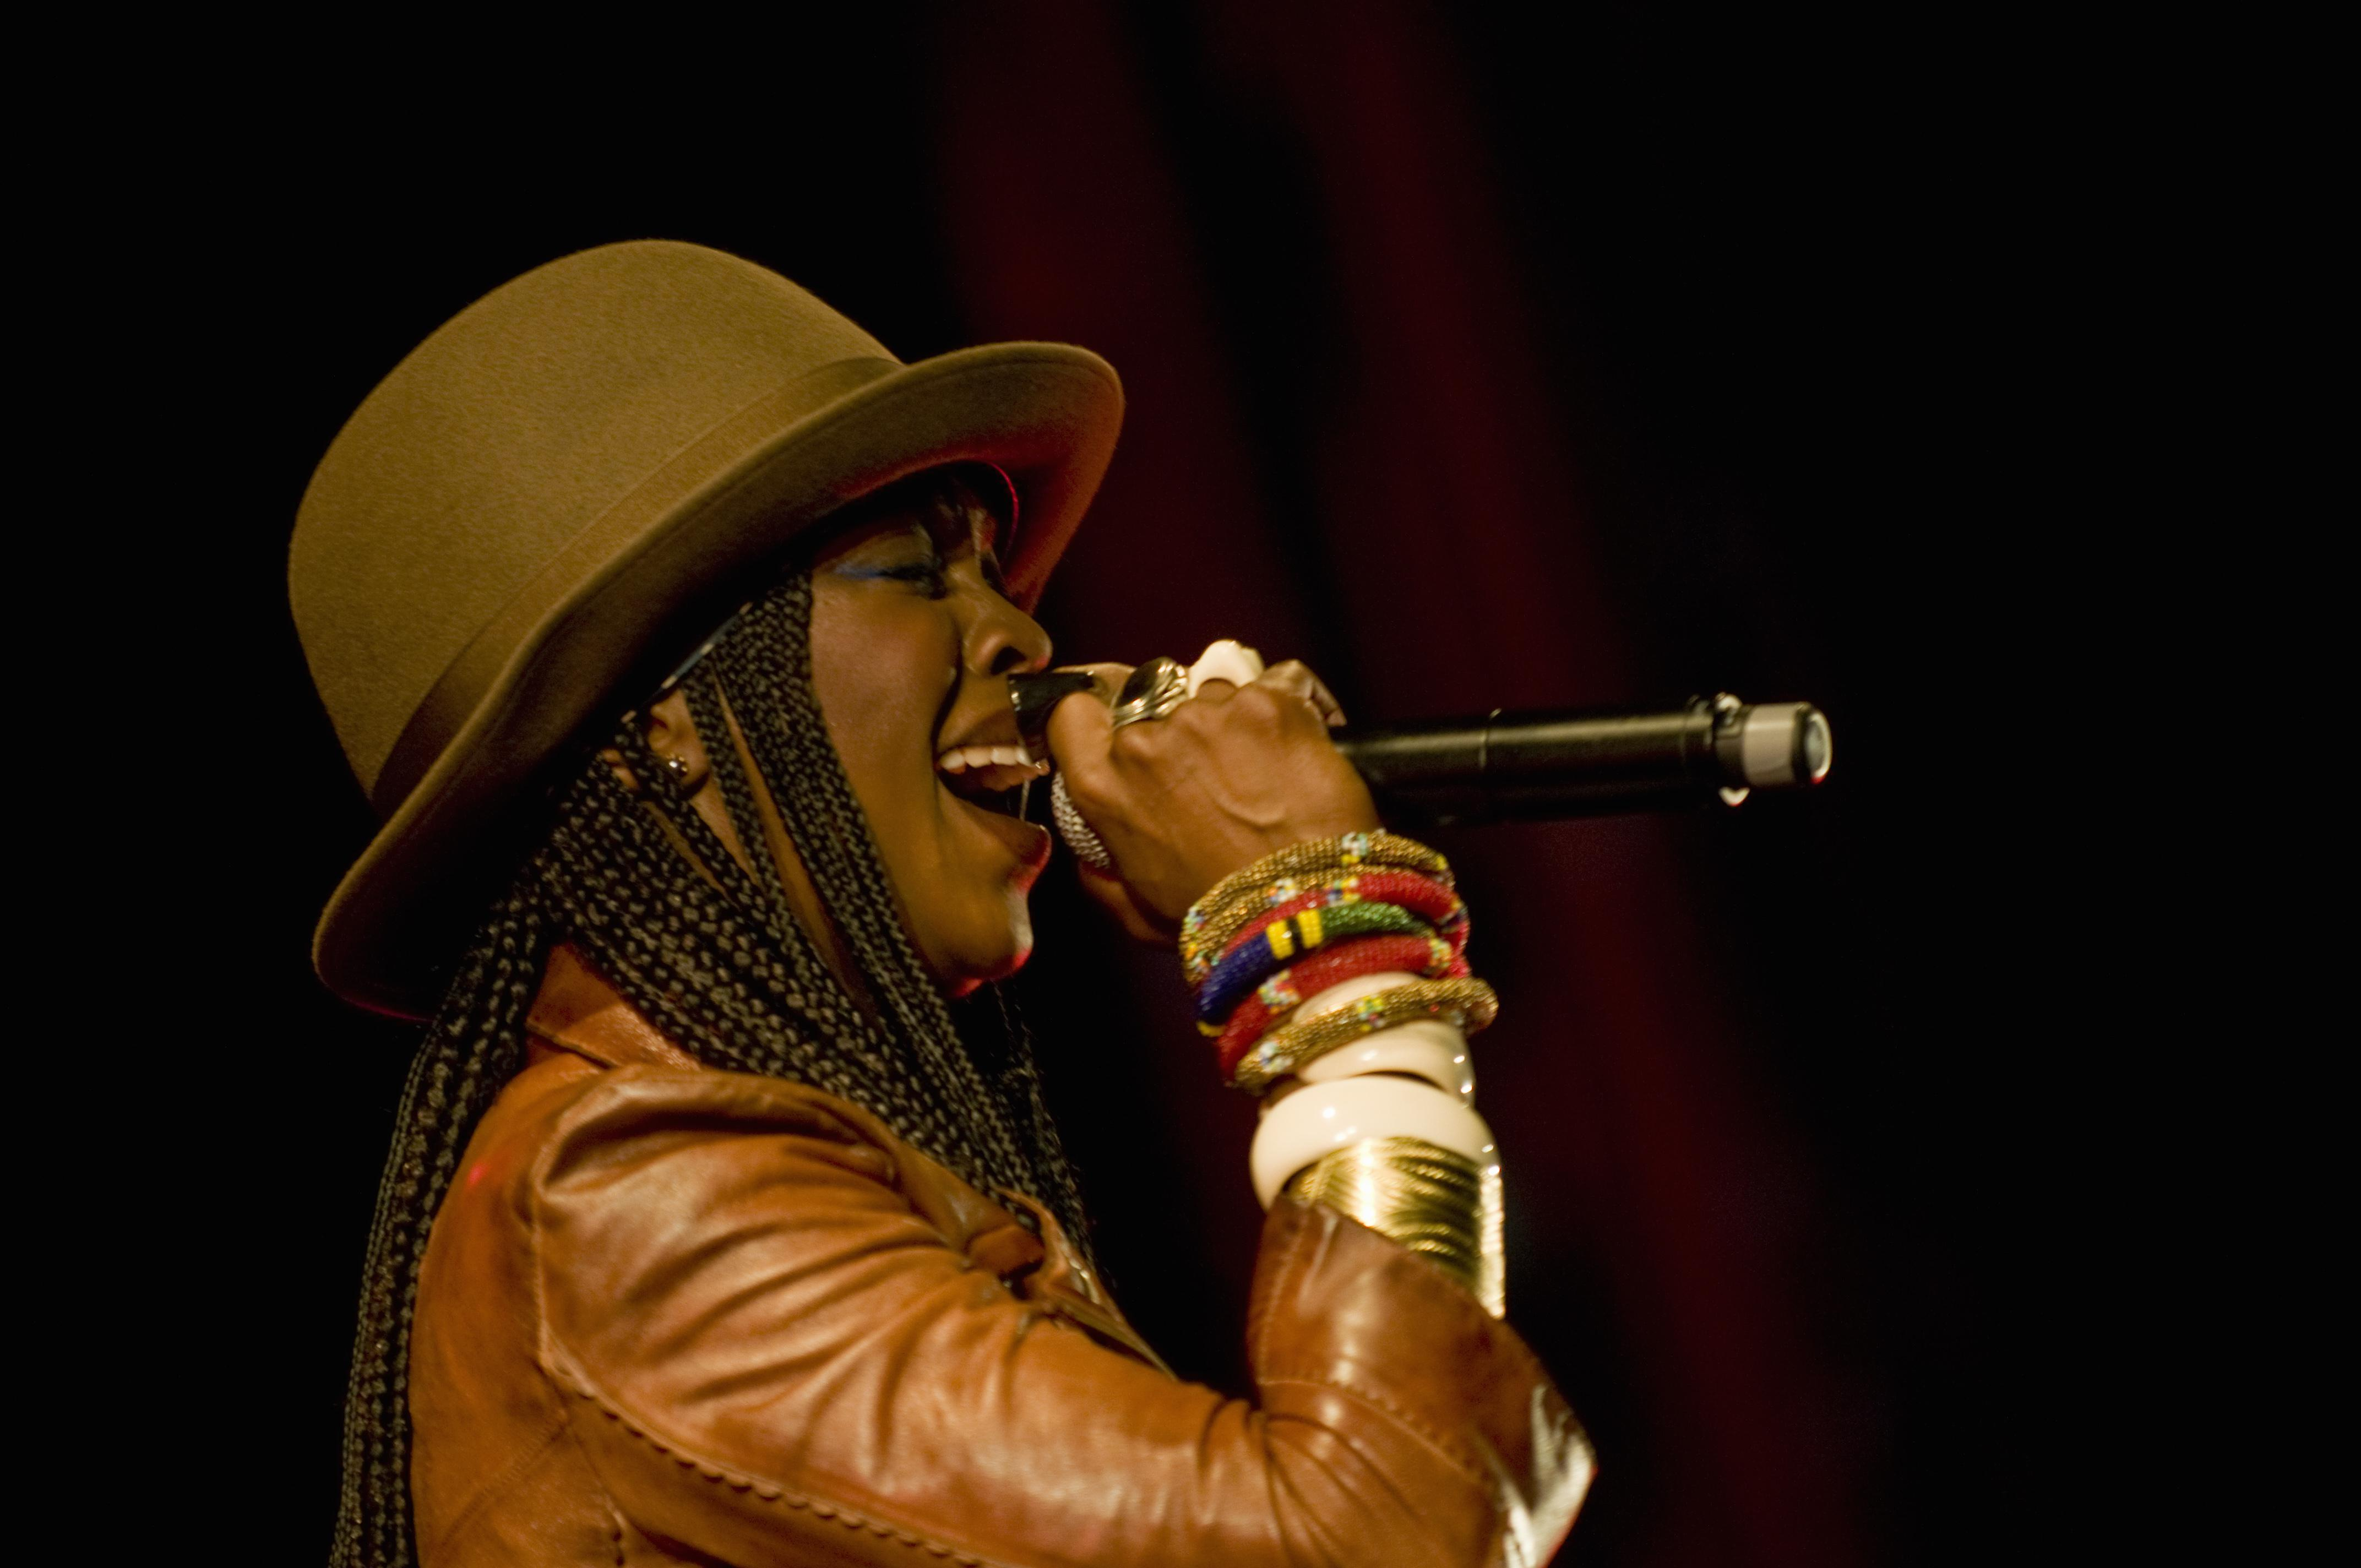 American recording artist Lauryn Hill performing at the Festival dos Oceanos, Praca do Comercio, Baixa.